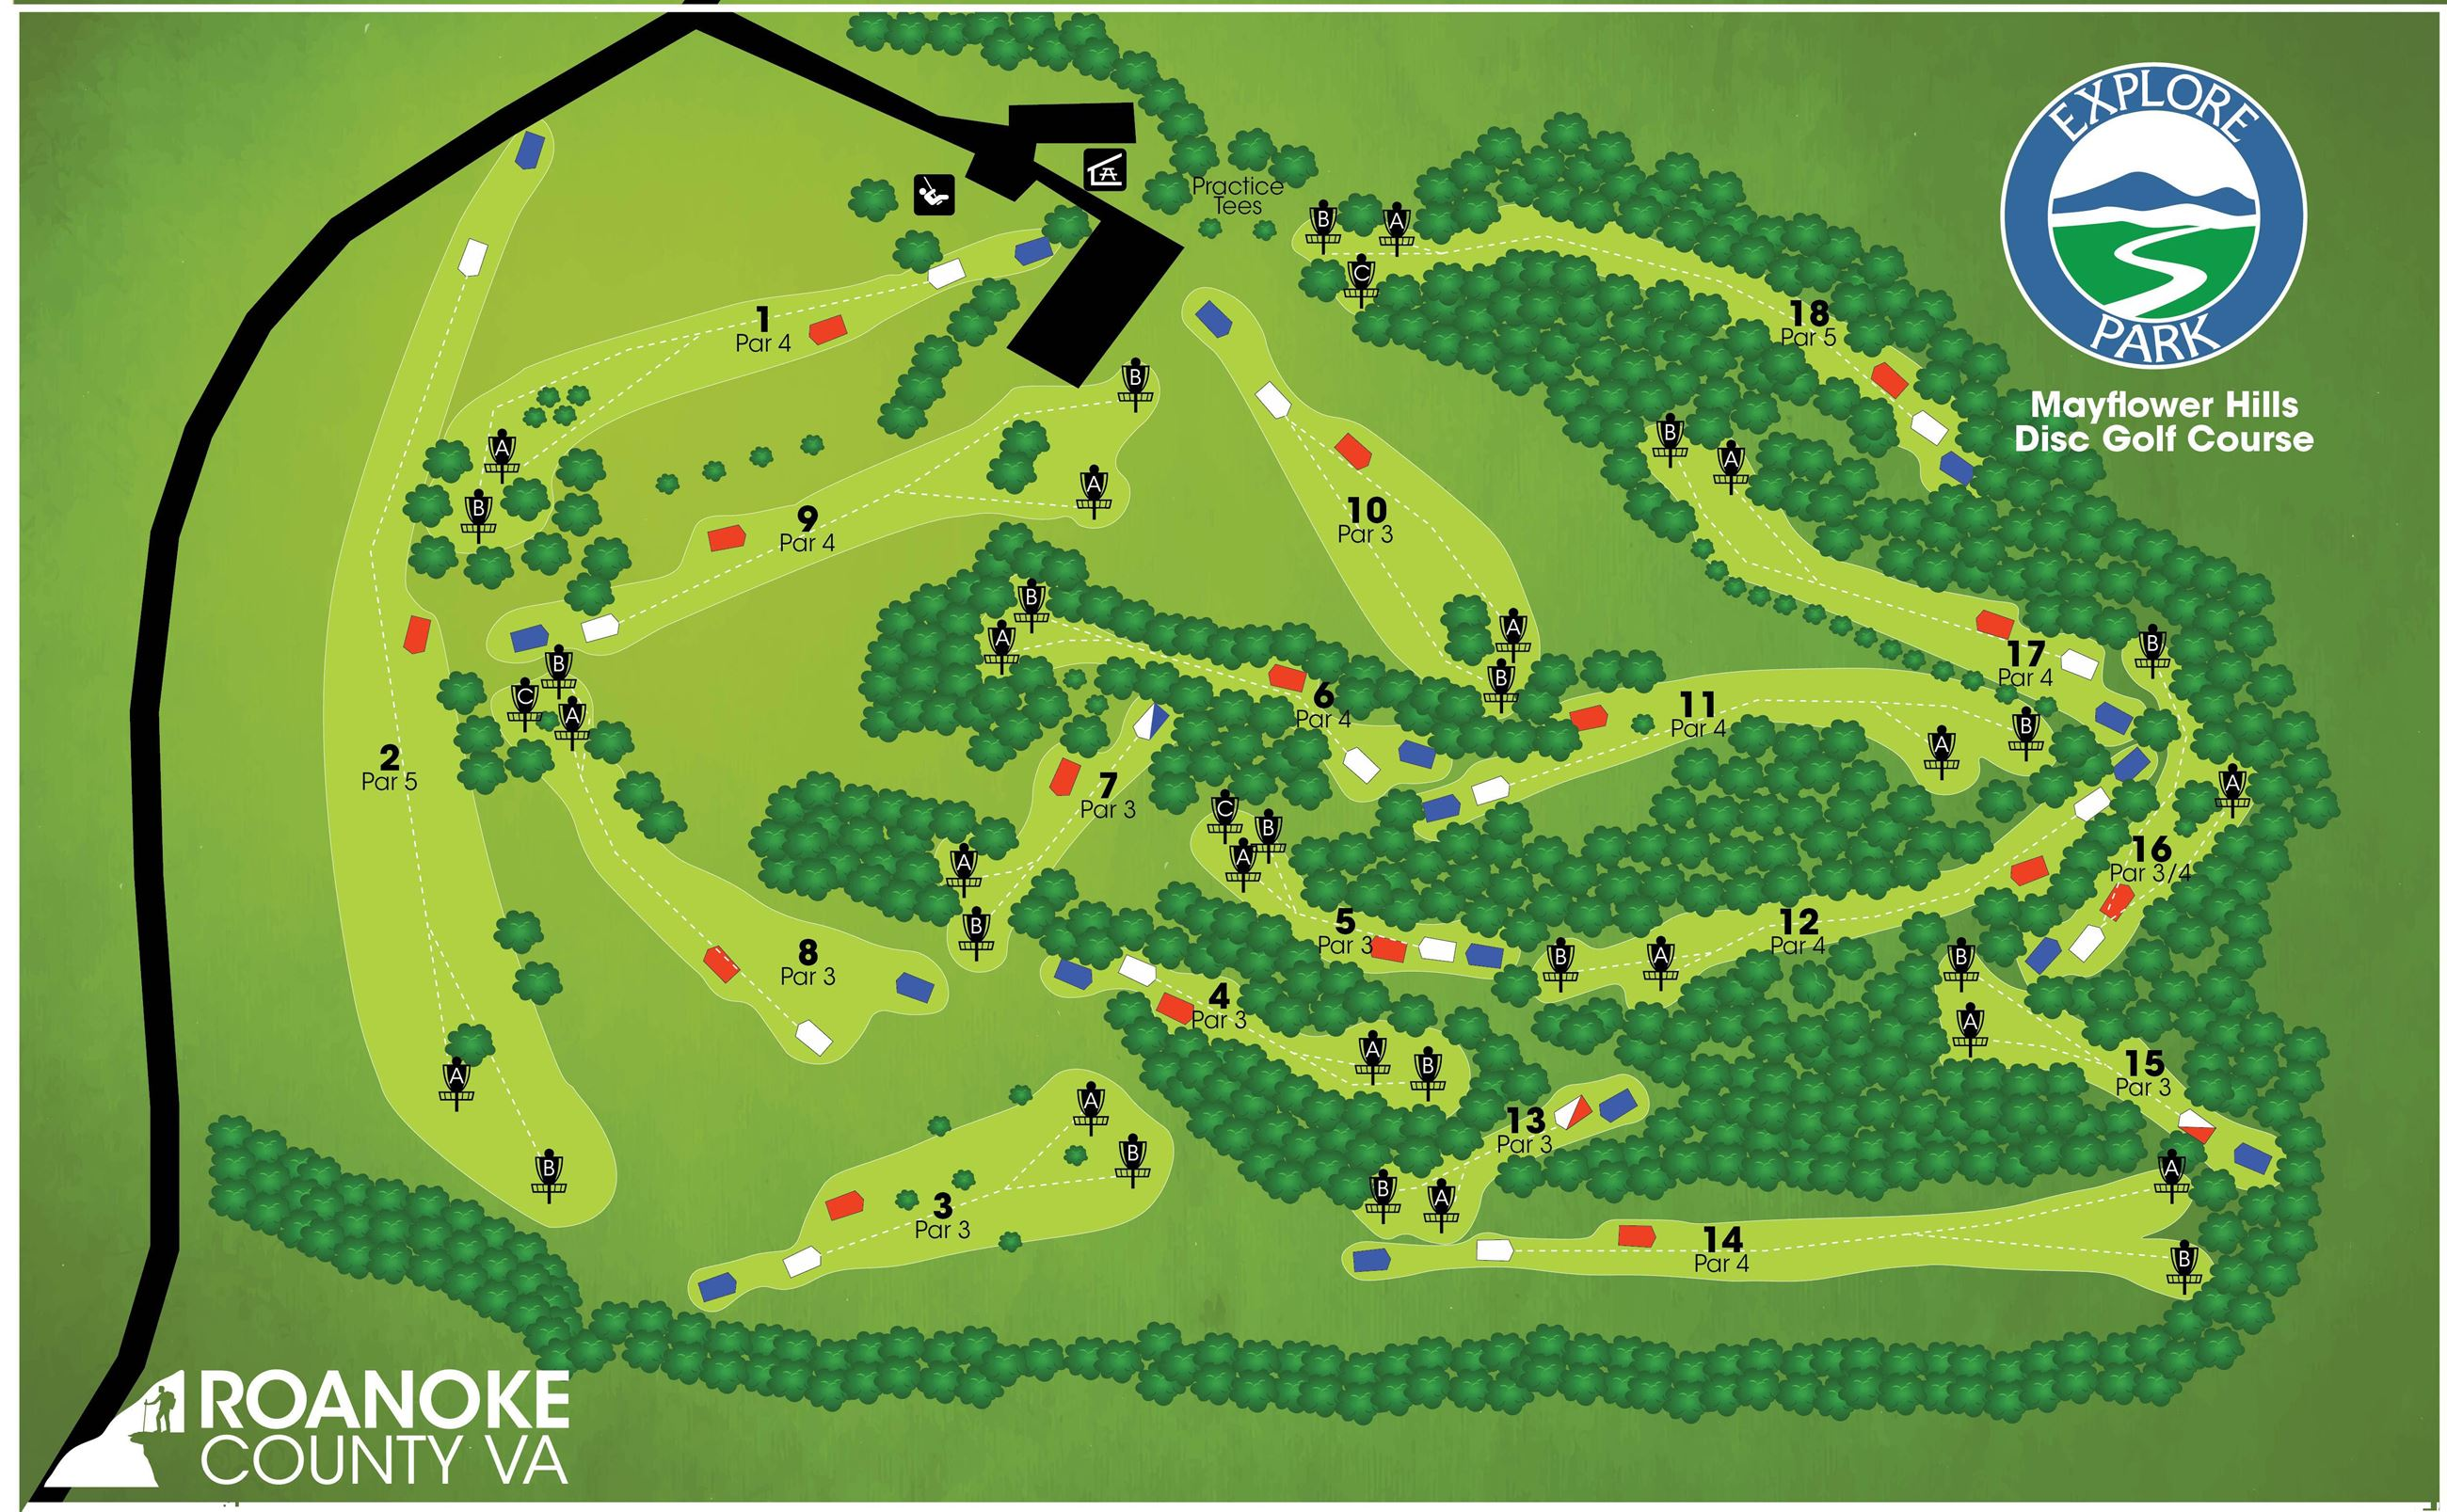 DiscGolfCourse-MasterMap-DRAFT4